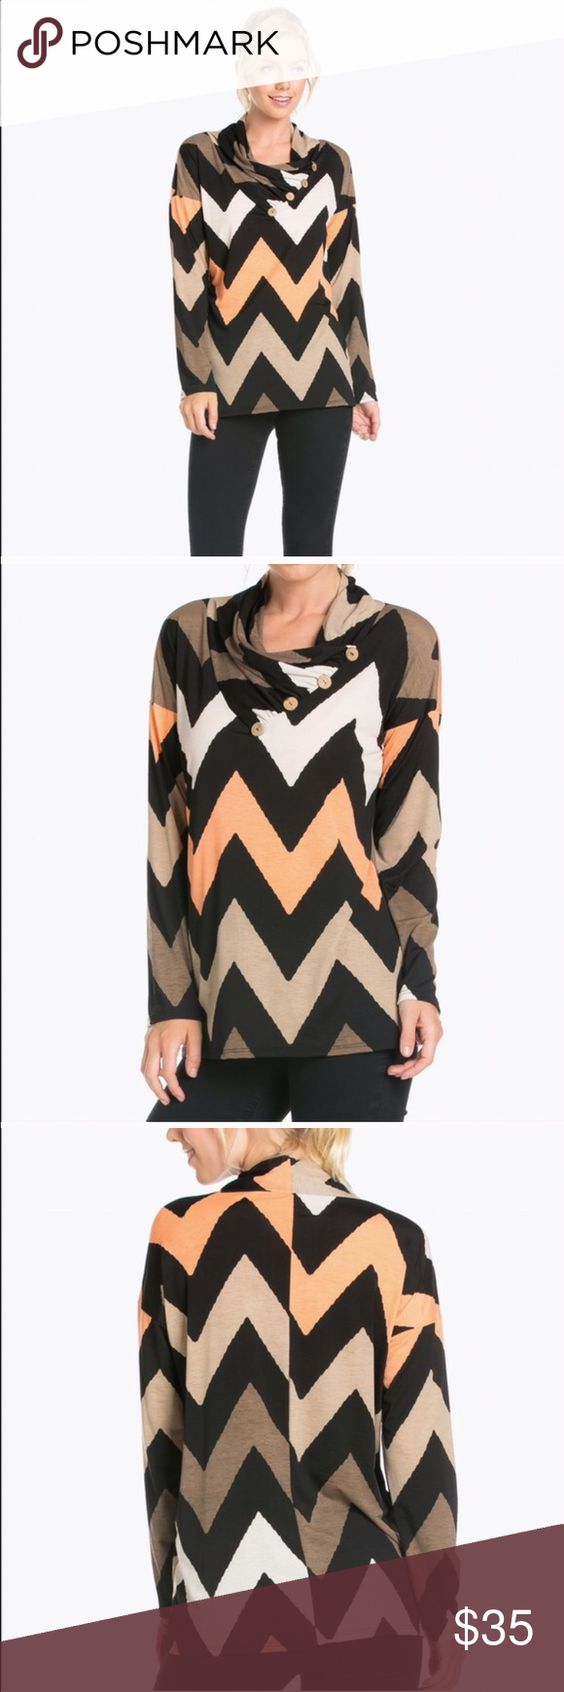 Blossom Apparel.. Chevron top This top is brand new with tags. Button top. 95% polyester, 5% spandex. Tops